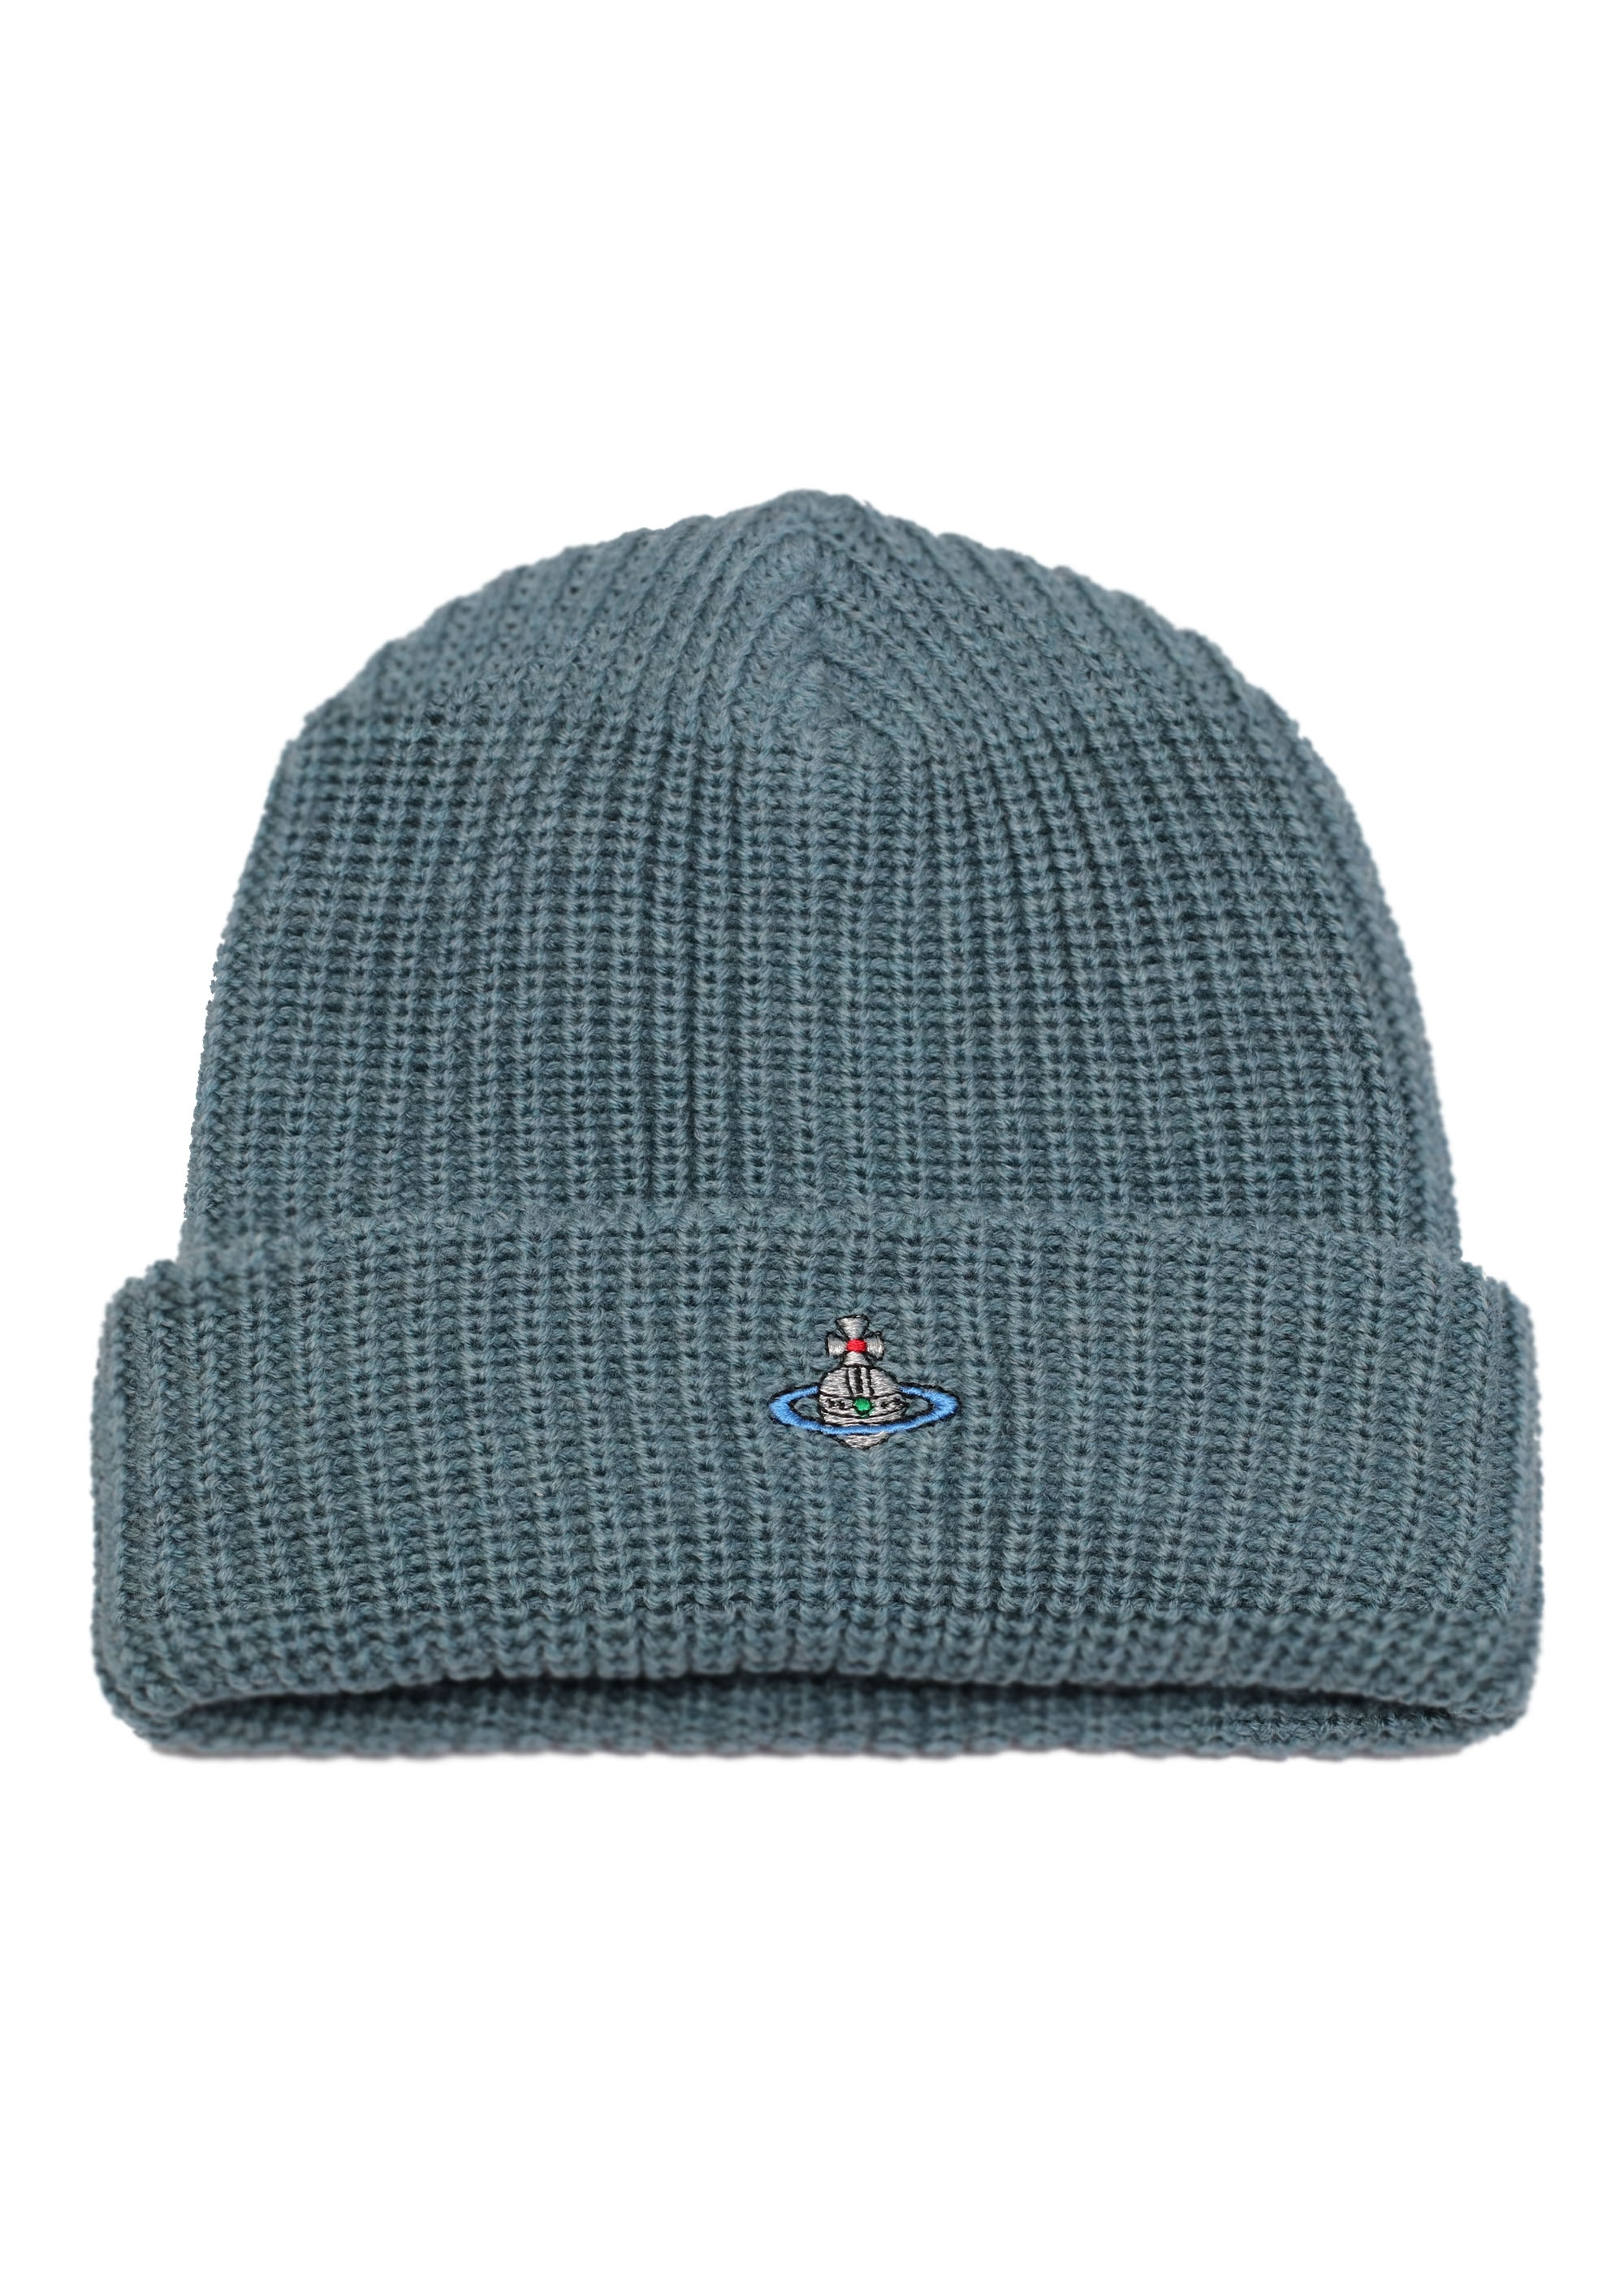 Vivienne Westwood Mens Beanie Hat - Green - Triads Mens from Triads UK 086d54555ab